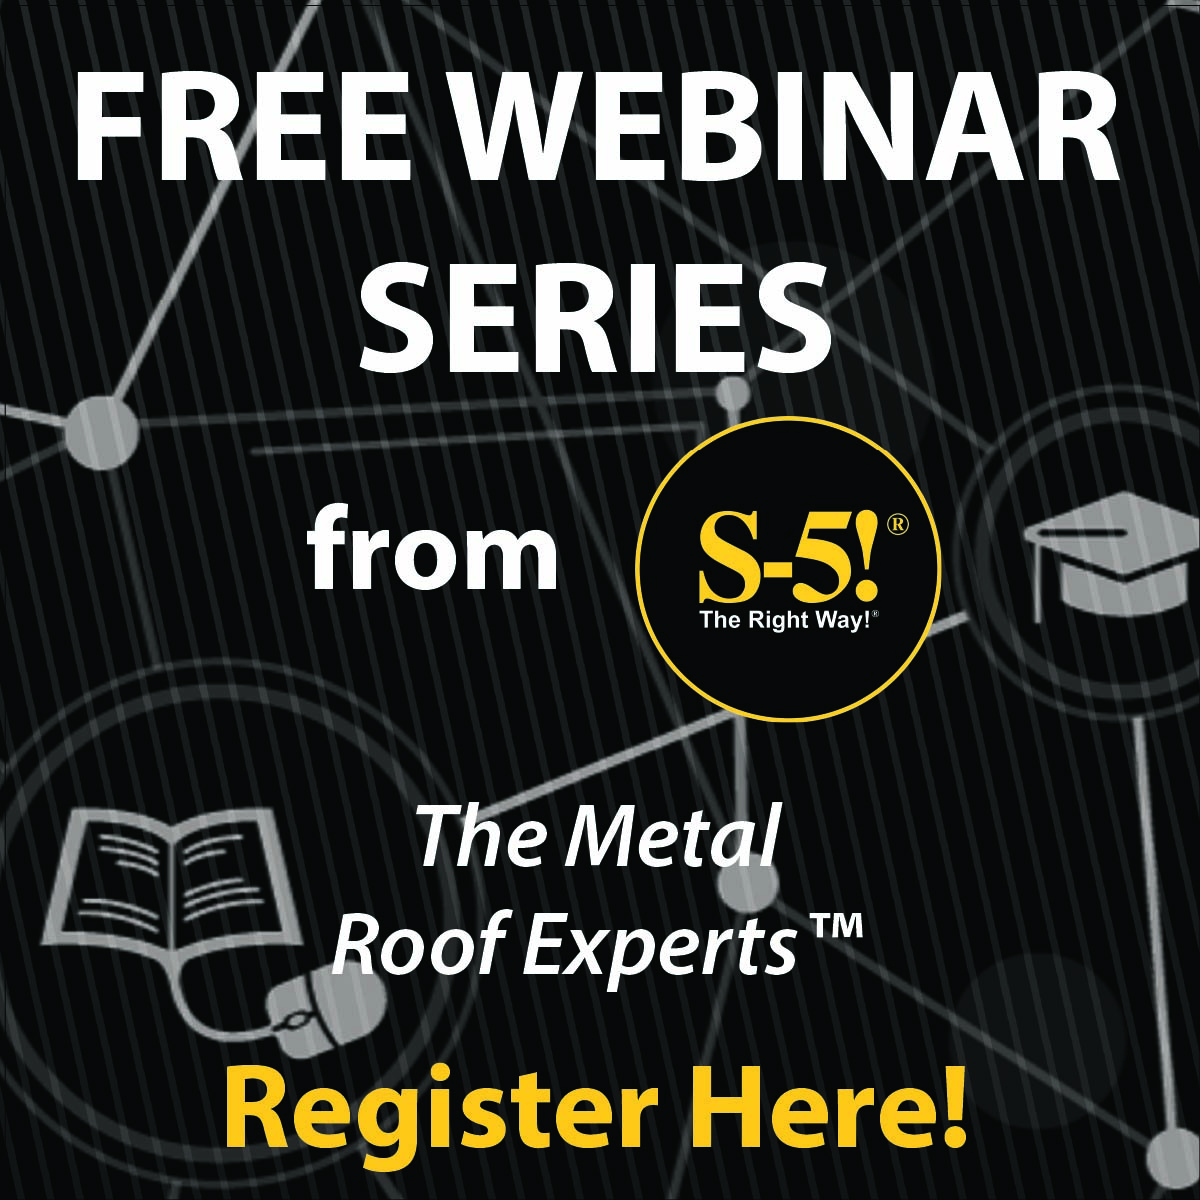 S-5!-Offers-Free-Metal-Roofing-Webinars-on-Snow-Retention-Solar-Mounting